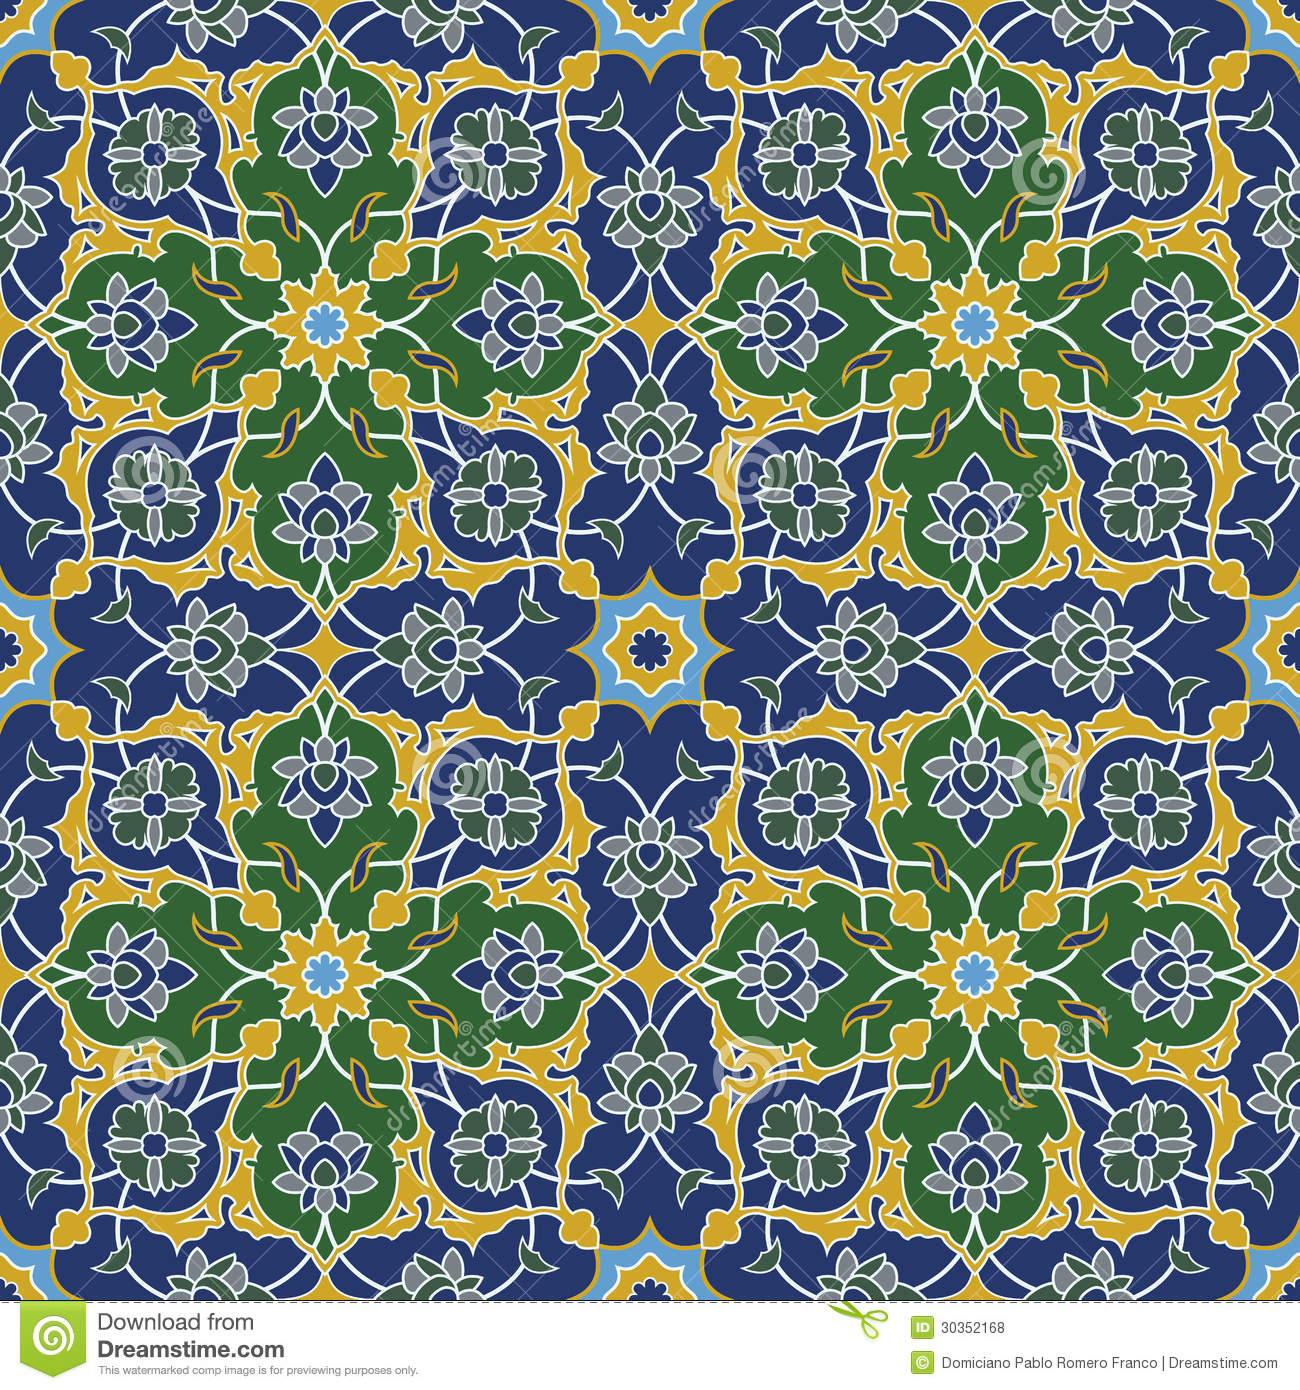 Download Arabesque Seamless Pattern In Blue And Green Stock Vector - Illustration of islamic, geometric: 30352168